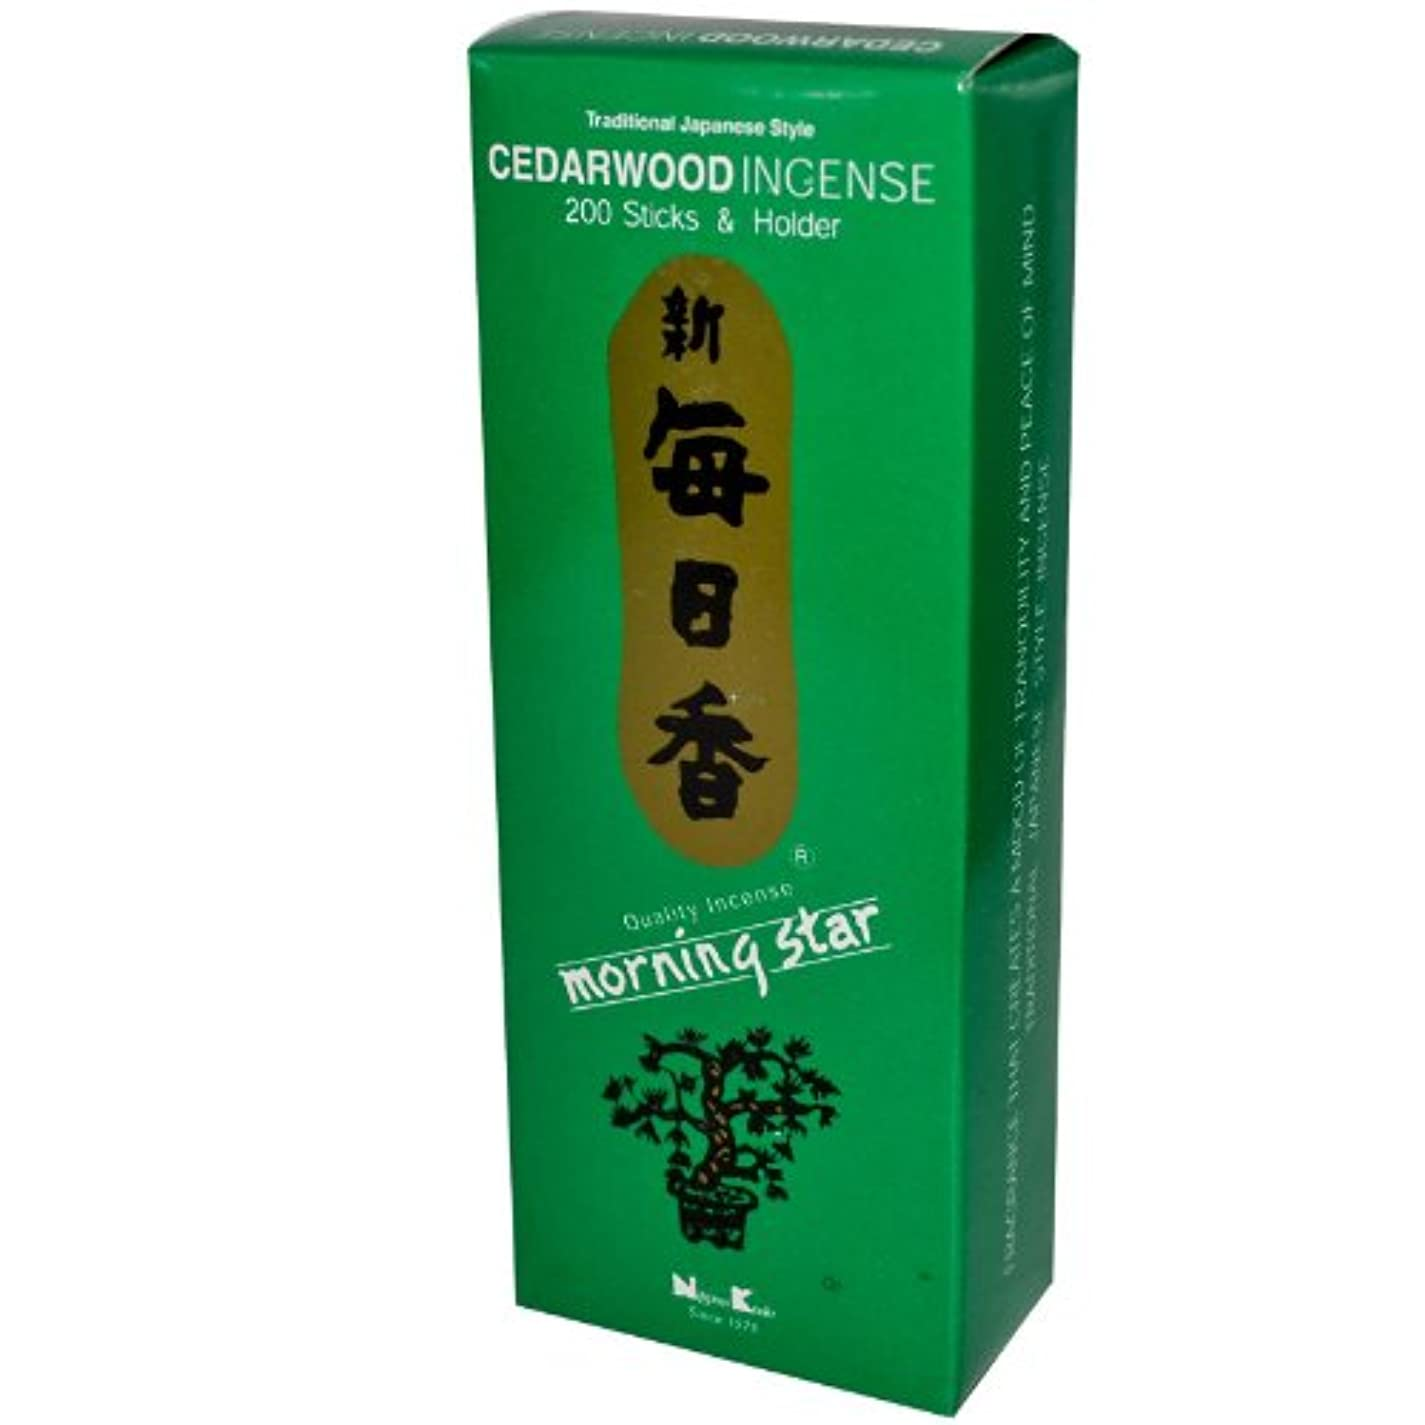 太陽球体プラカード(1, Green) - Morning Star, Cedarwood Incense, 200 Sticks & Holder